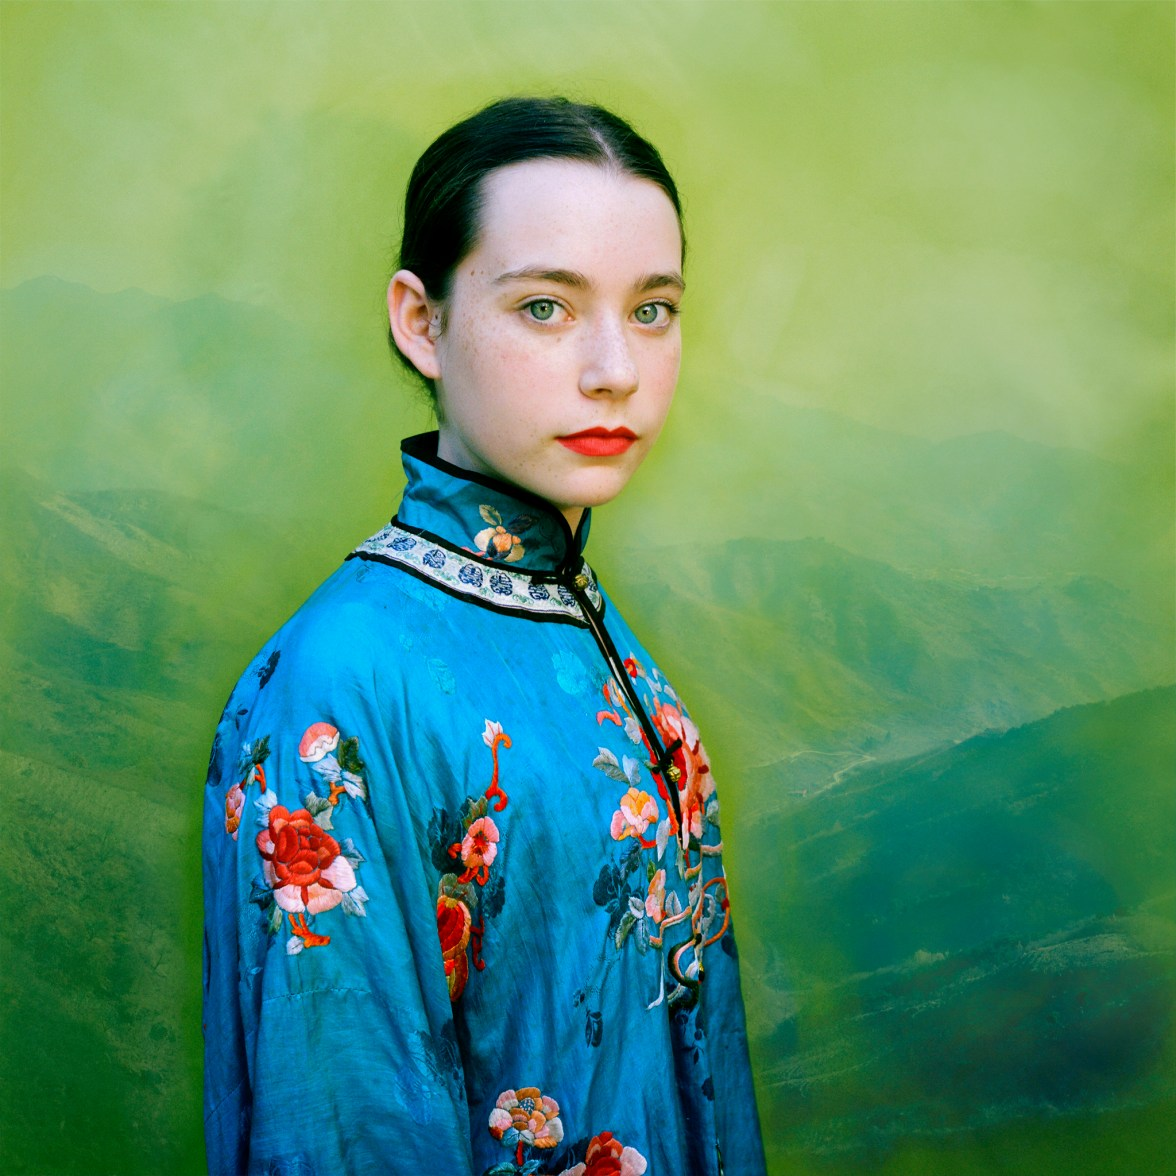 Lucy in Turquoise © Aline Smithson